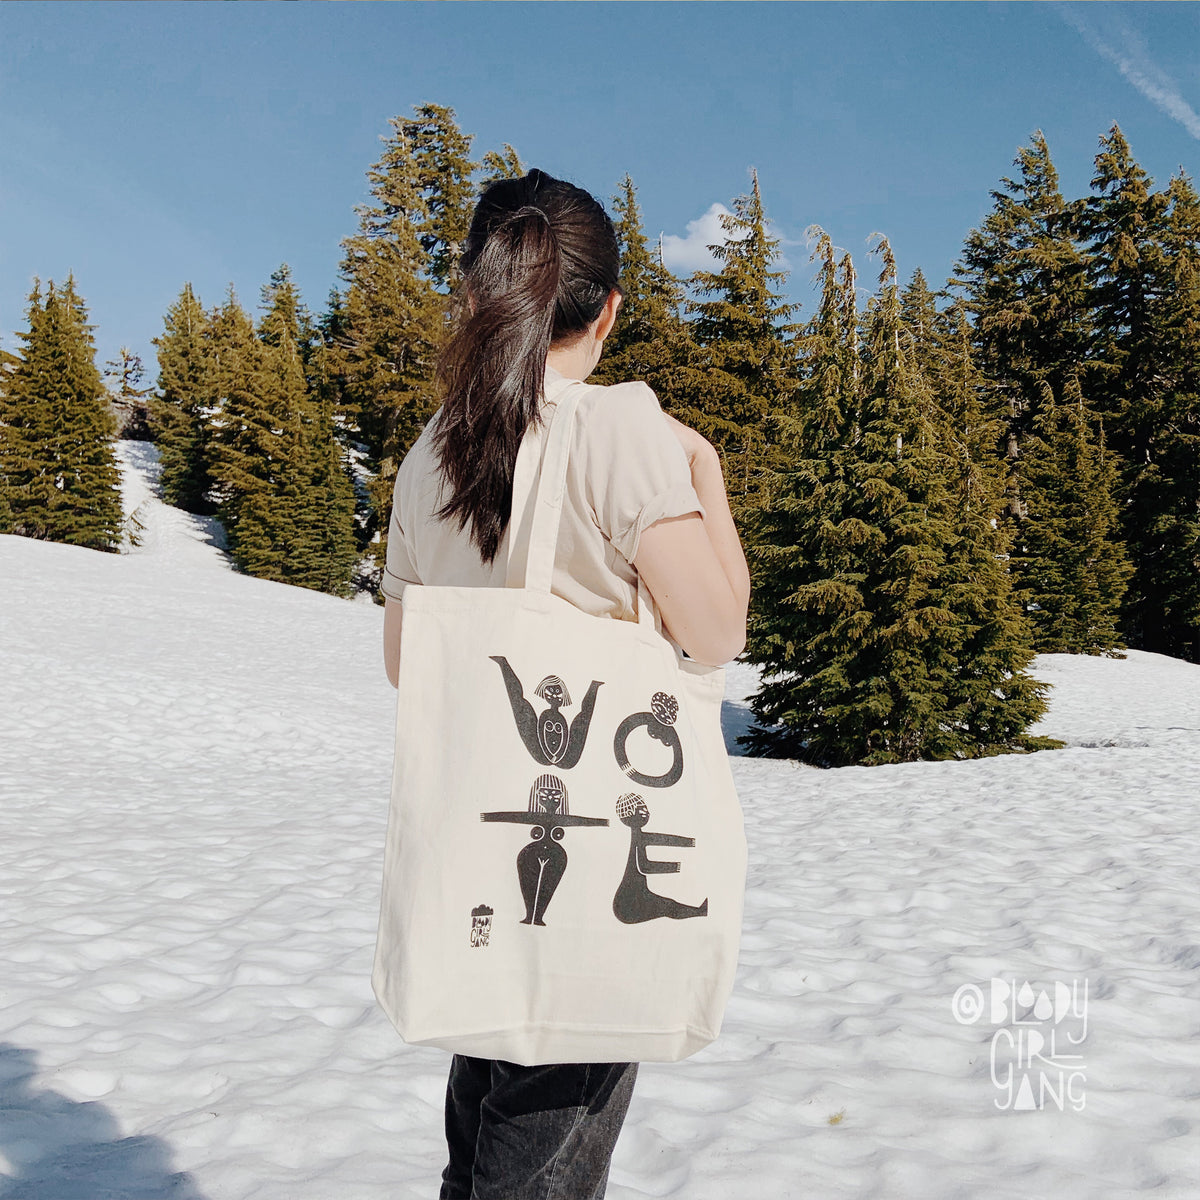 VOTE Tote (SOLDOUT)